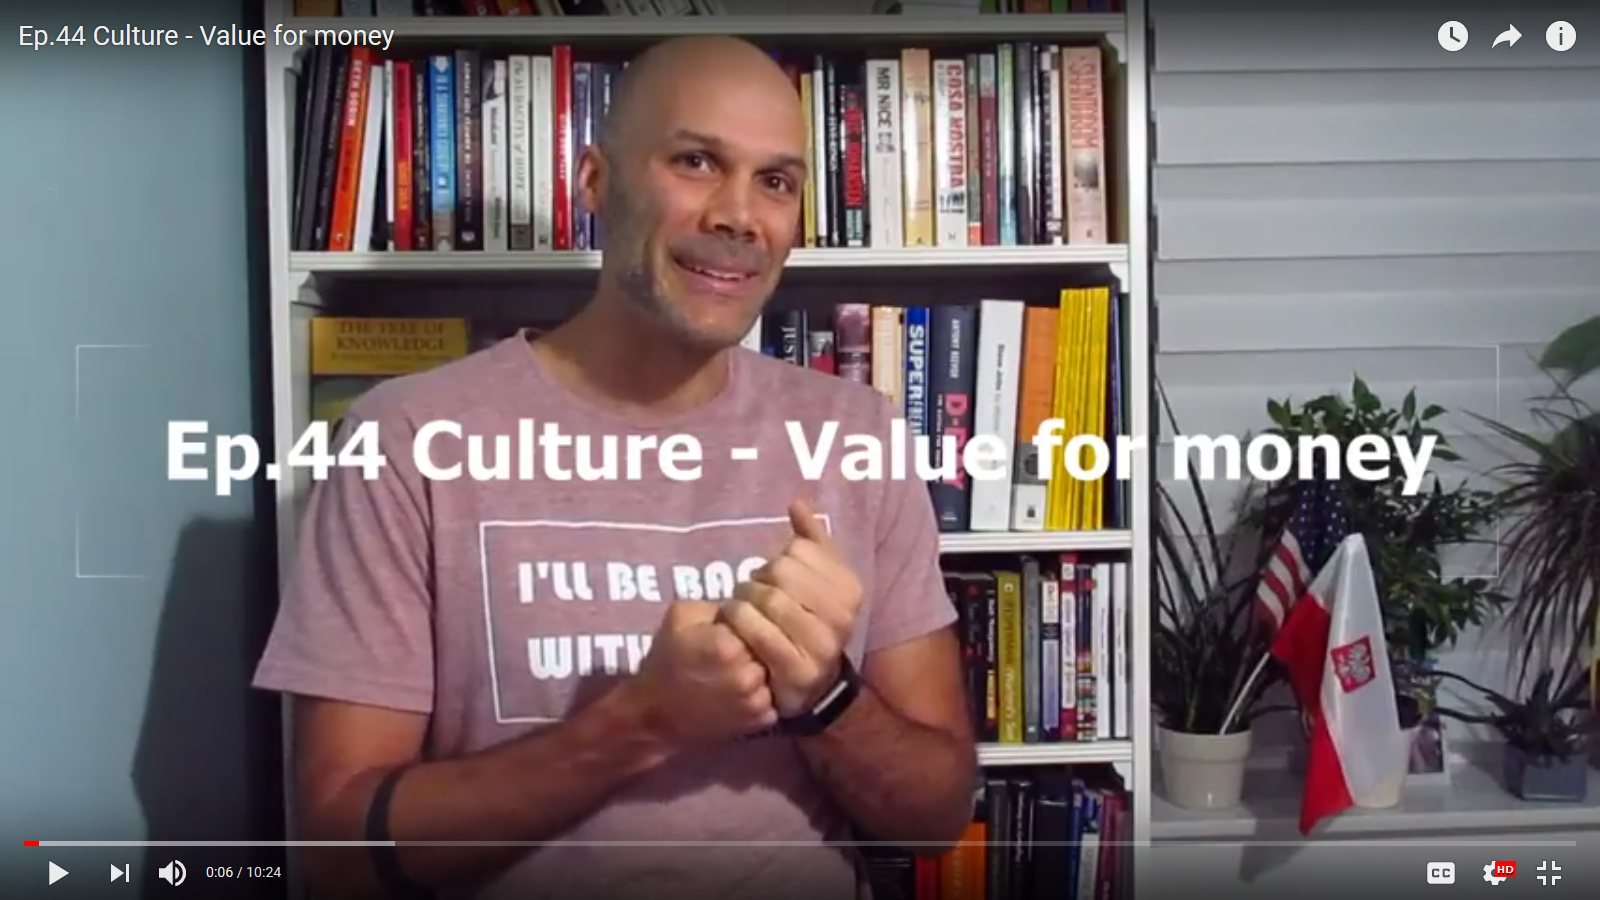 Teaching culture in the ESL classroom and discussing value